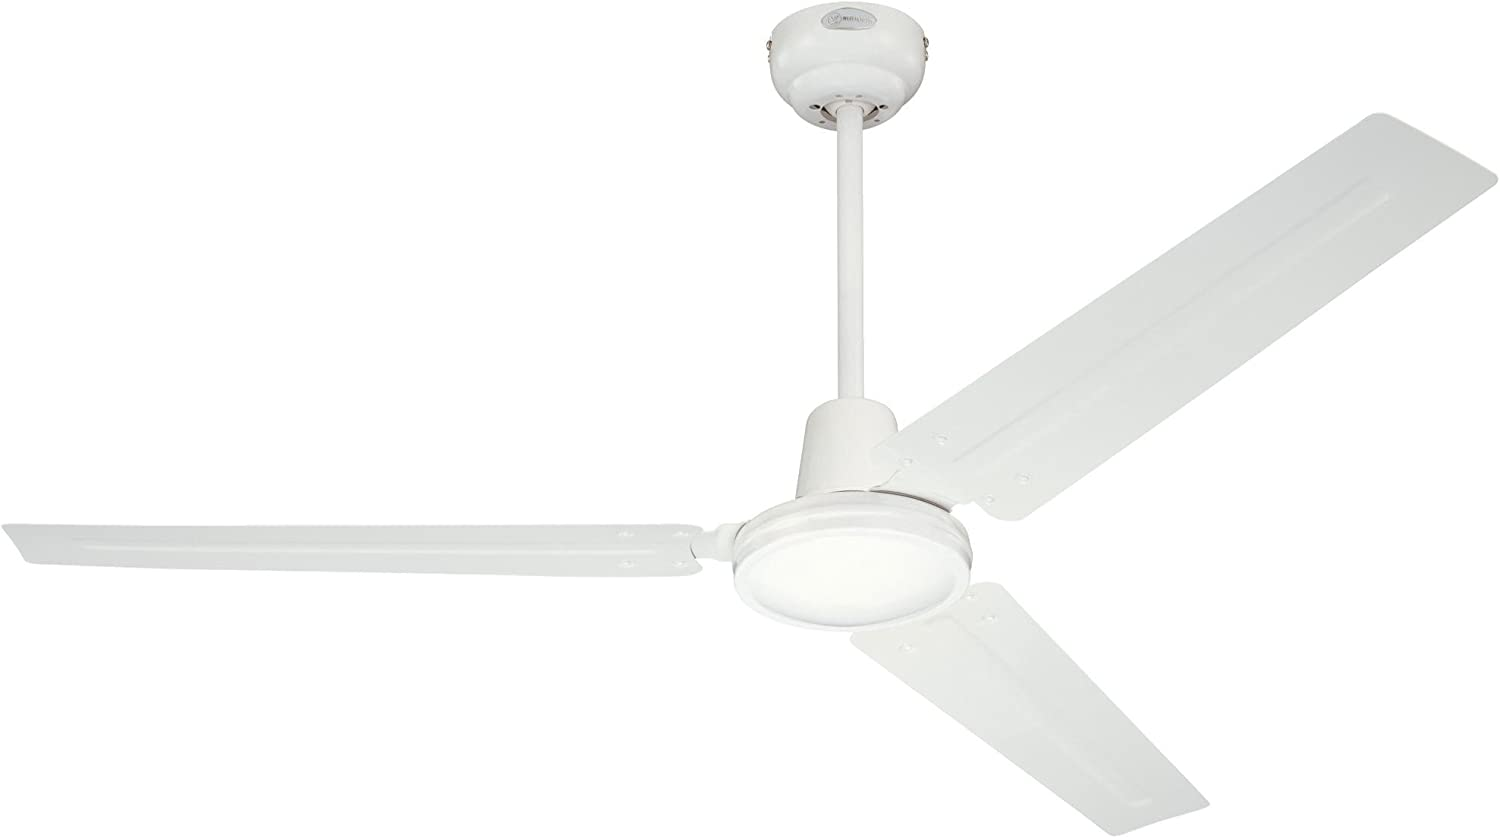 Westinghouse Ceiling Fans 7226840 72268 Industrial 142 cm Three Indoor Ceiling Fan, White Finish with White Blades